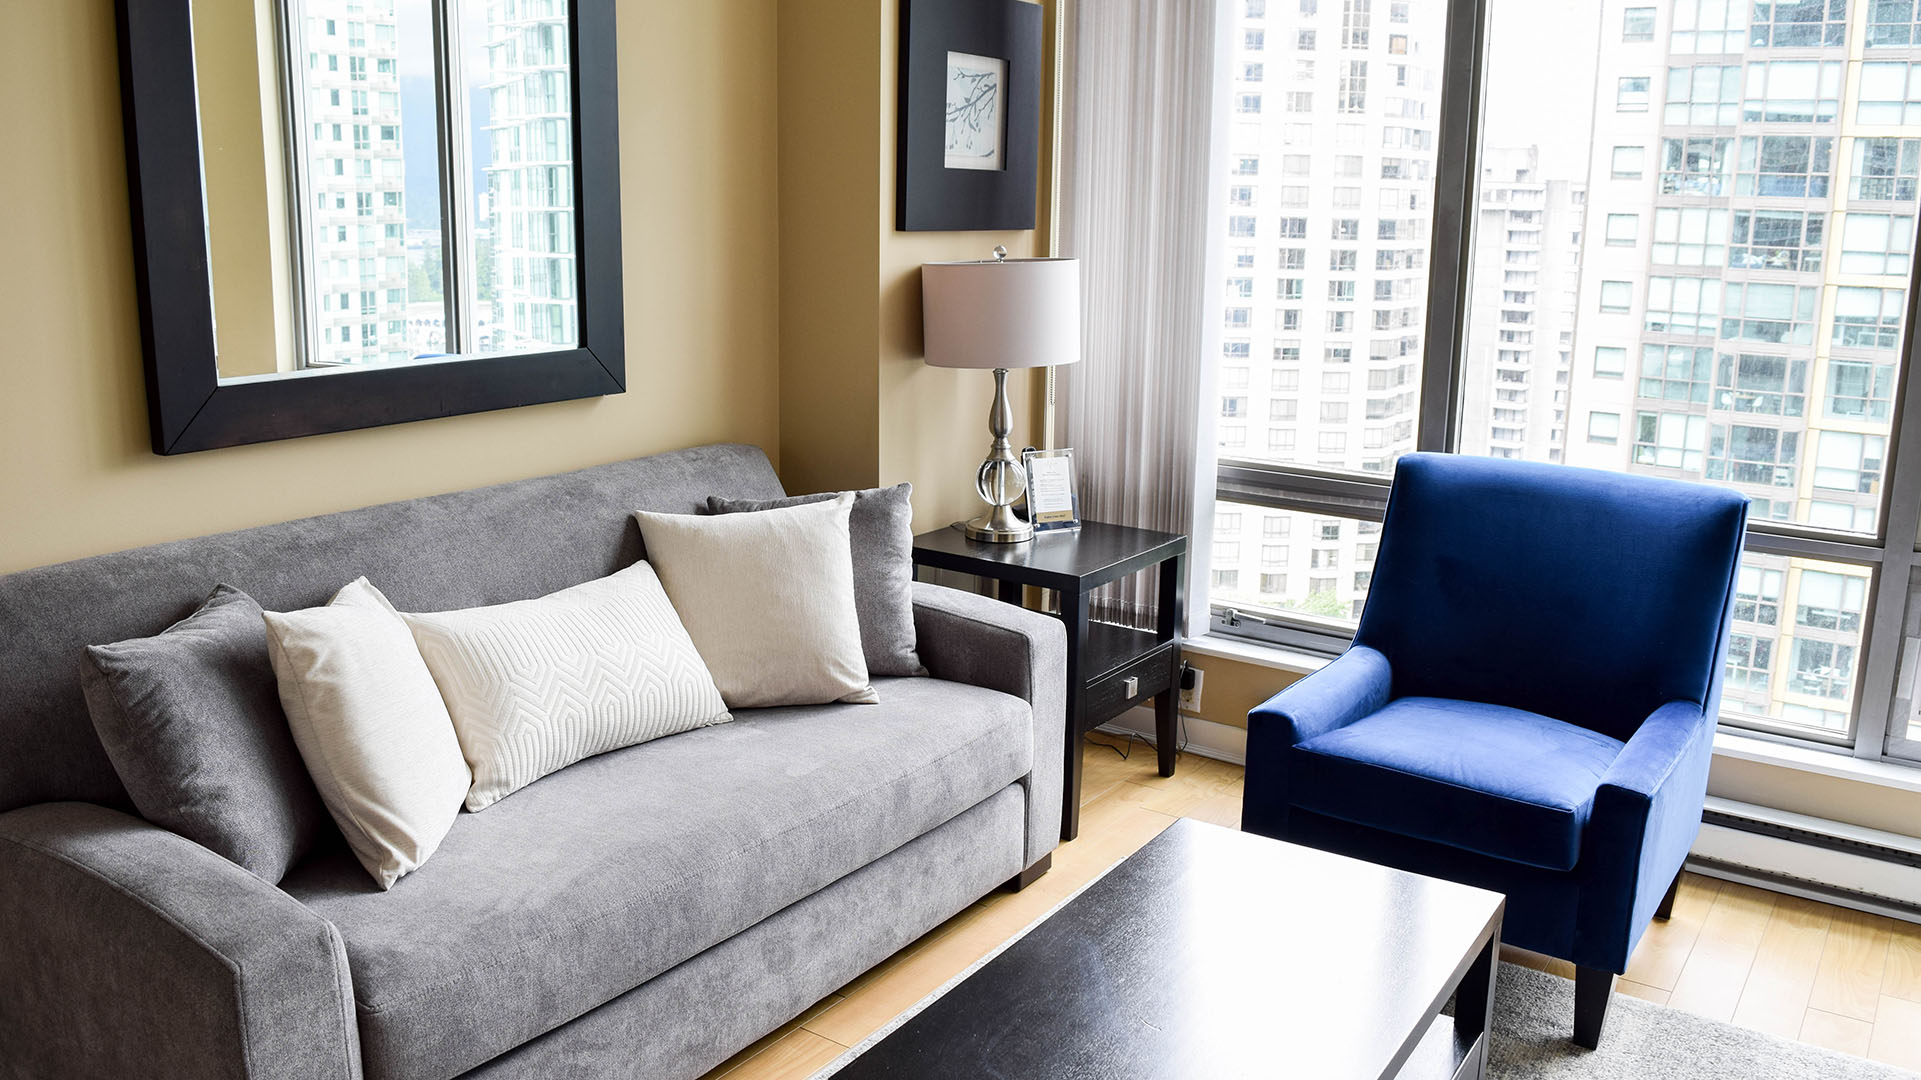 Photo of fully furnished apartment #1701 at The Residences on Georgia, 1288 West Georgia Street, Vancouver, BC